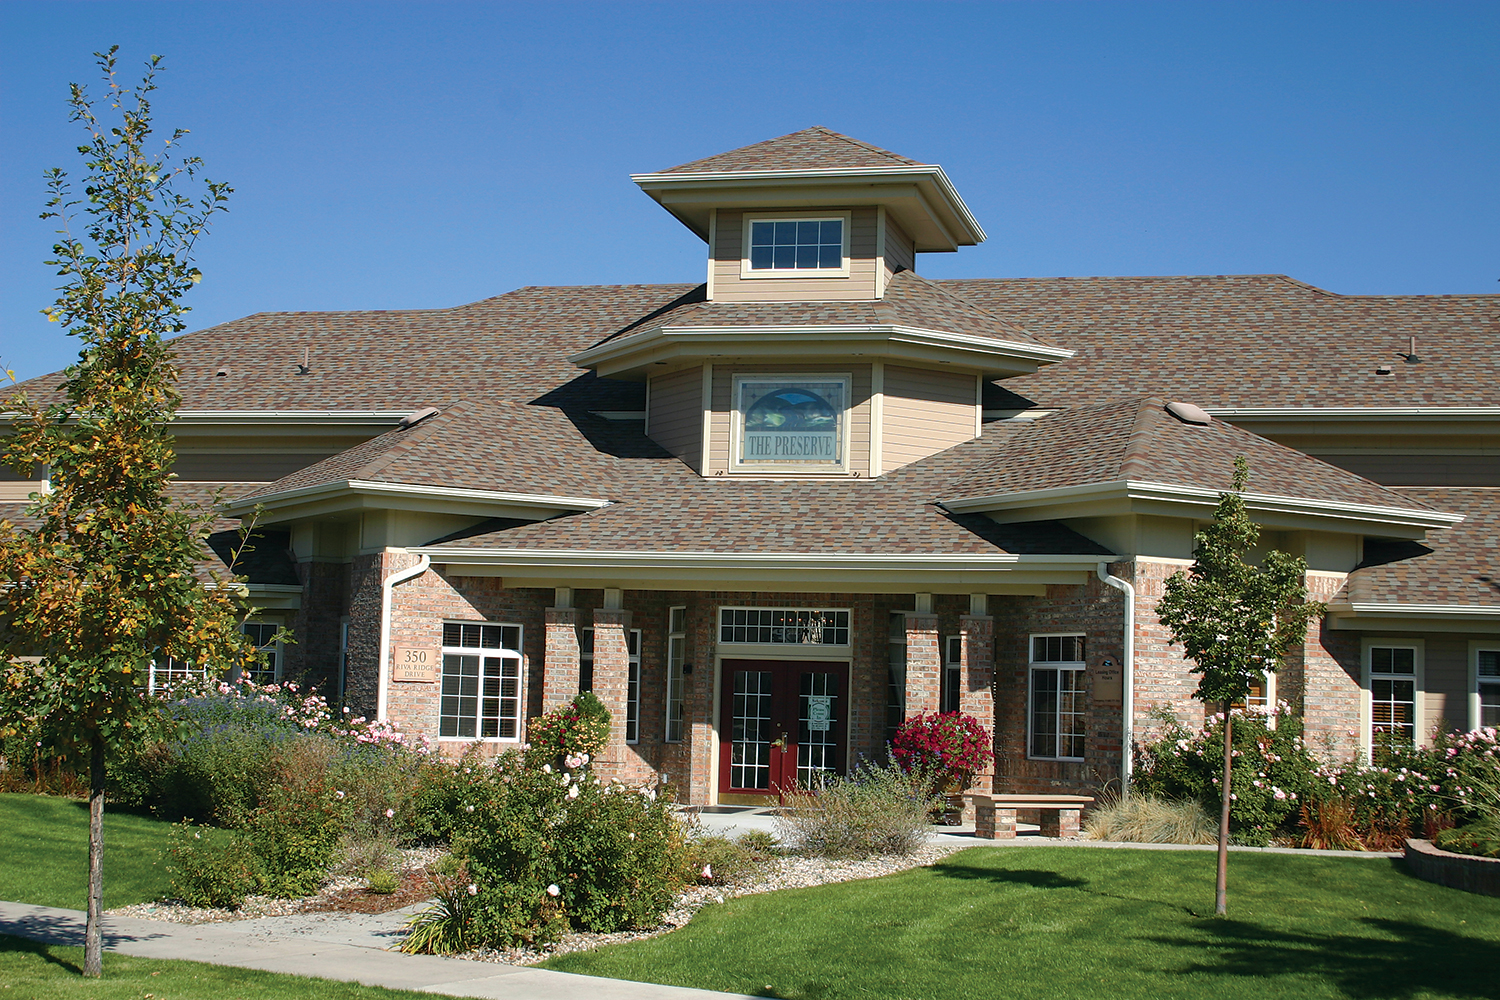 apartments and houses for rent near me in fort collins